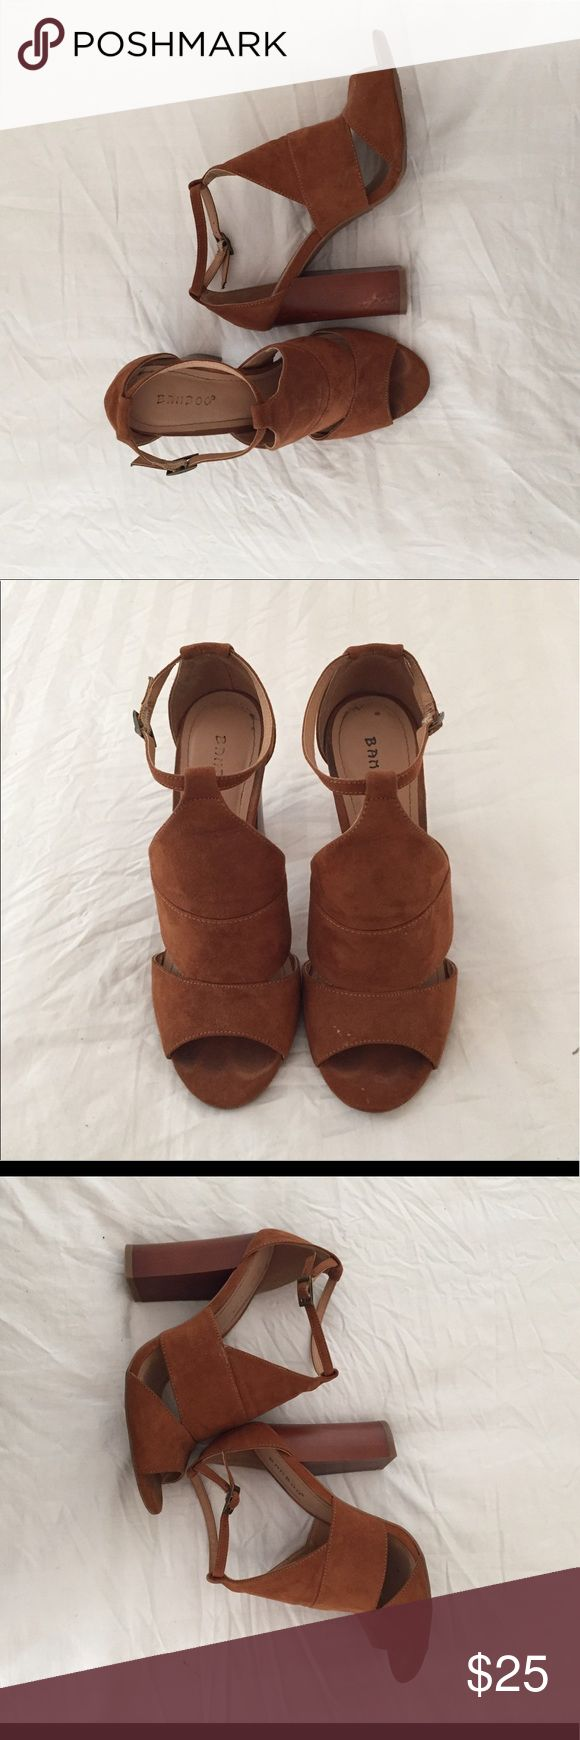 """The perfect summer heel 4"""" heel with open toes - lightly worn - suede material - size 8.5 - fits wide feet!! - perfect for spring summer AND fall 😉 Shoes Heels"""